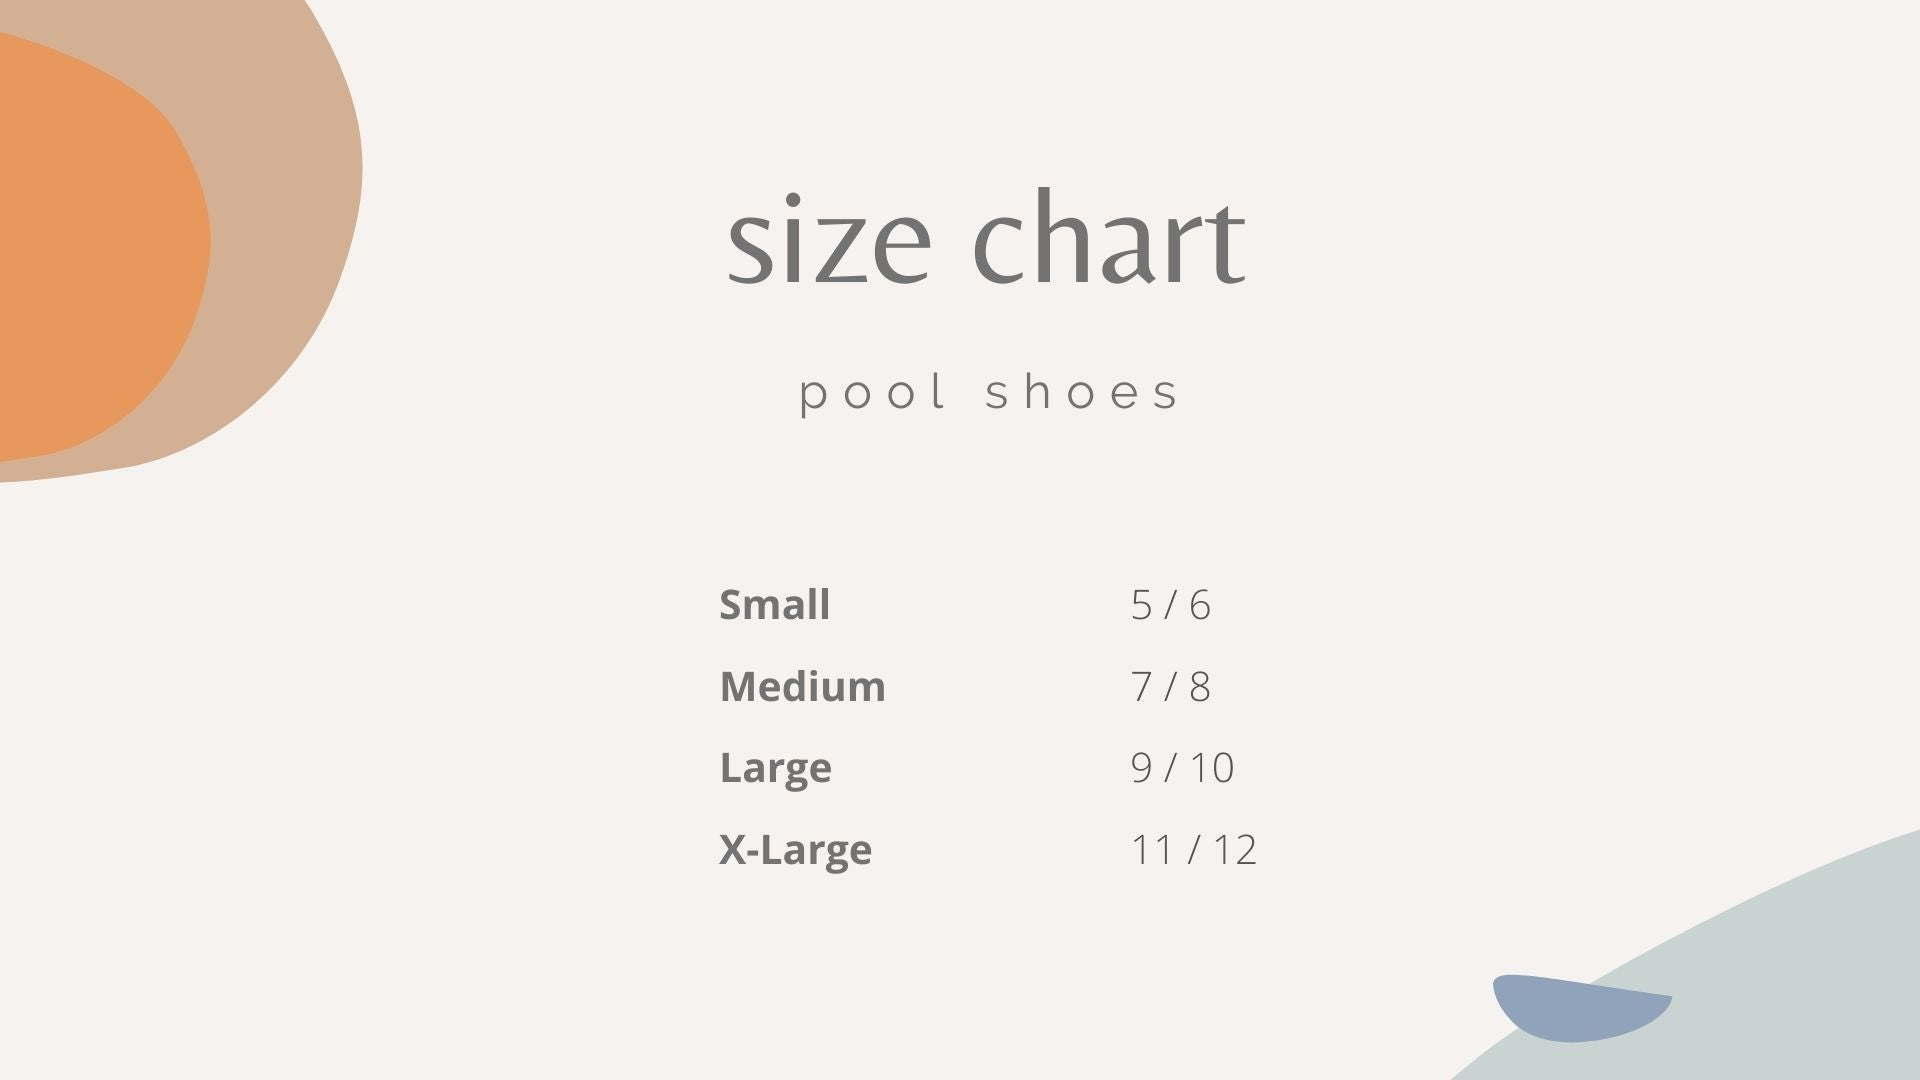 size chart for pool shoes